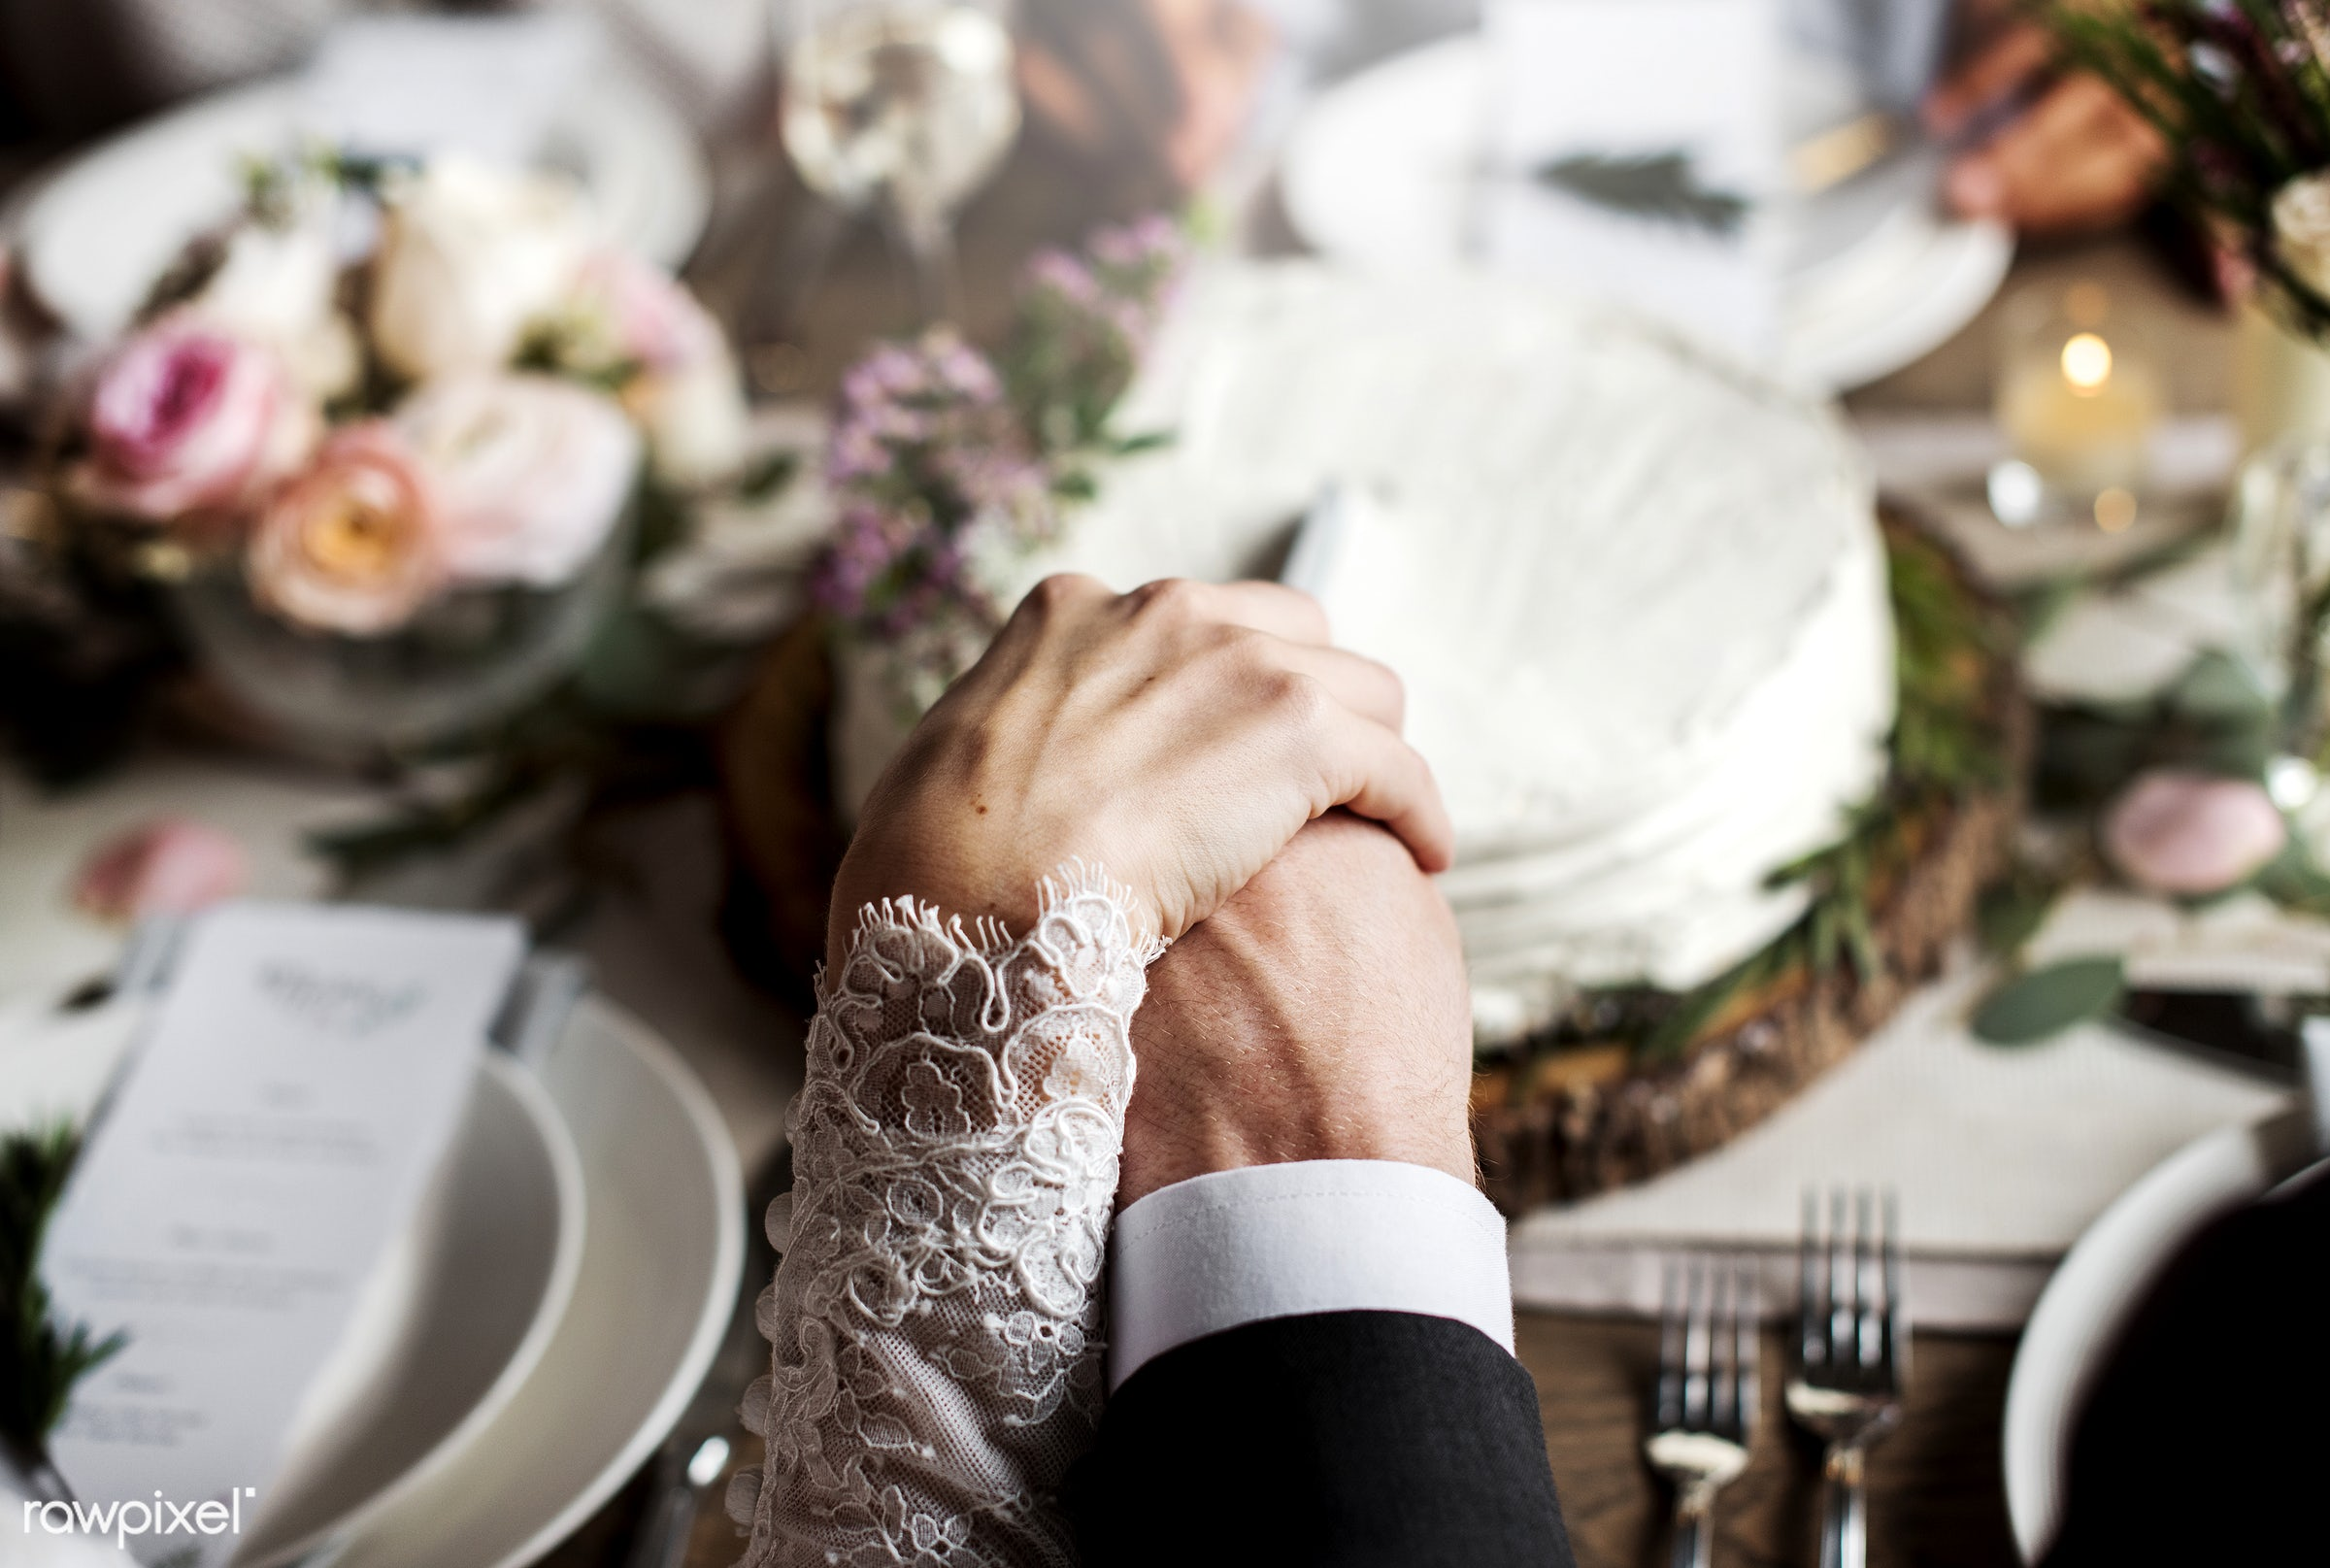 person, bonding, holding hand, husband, people, love, sharing, hands, woman, event, couple, soulmate, bride, knife, man,...